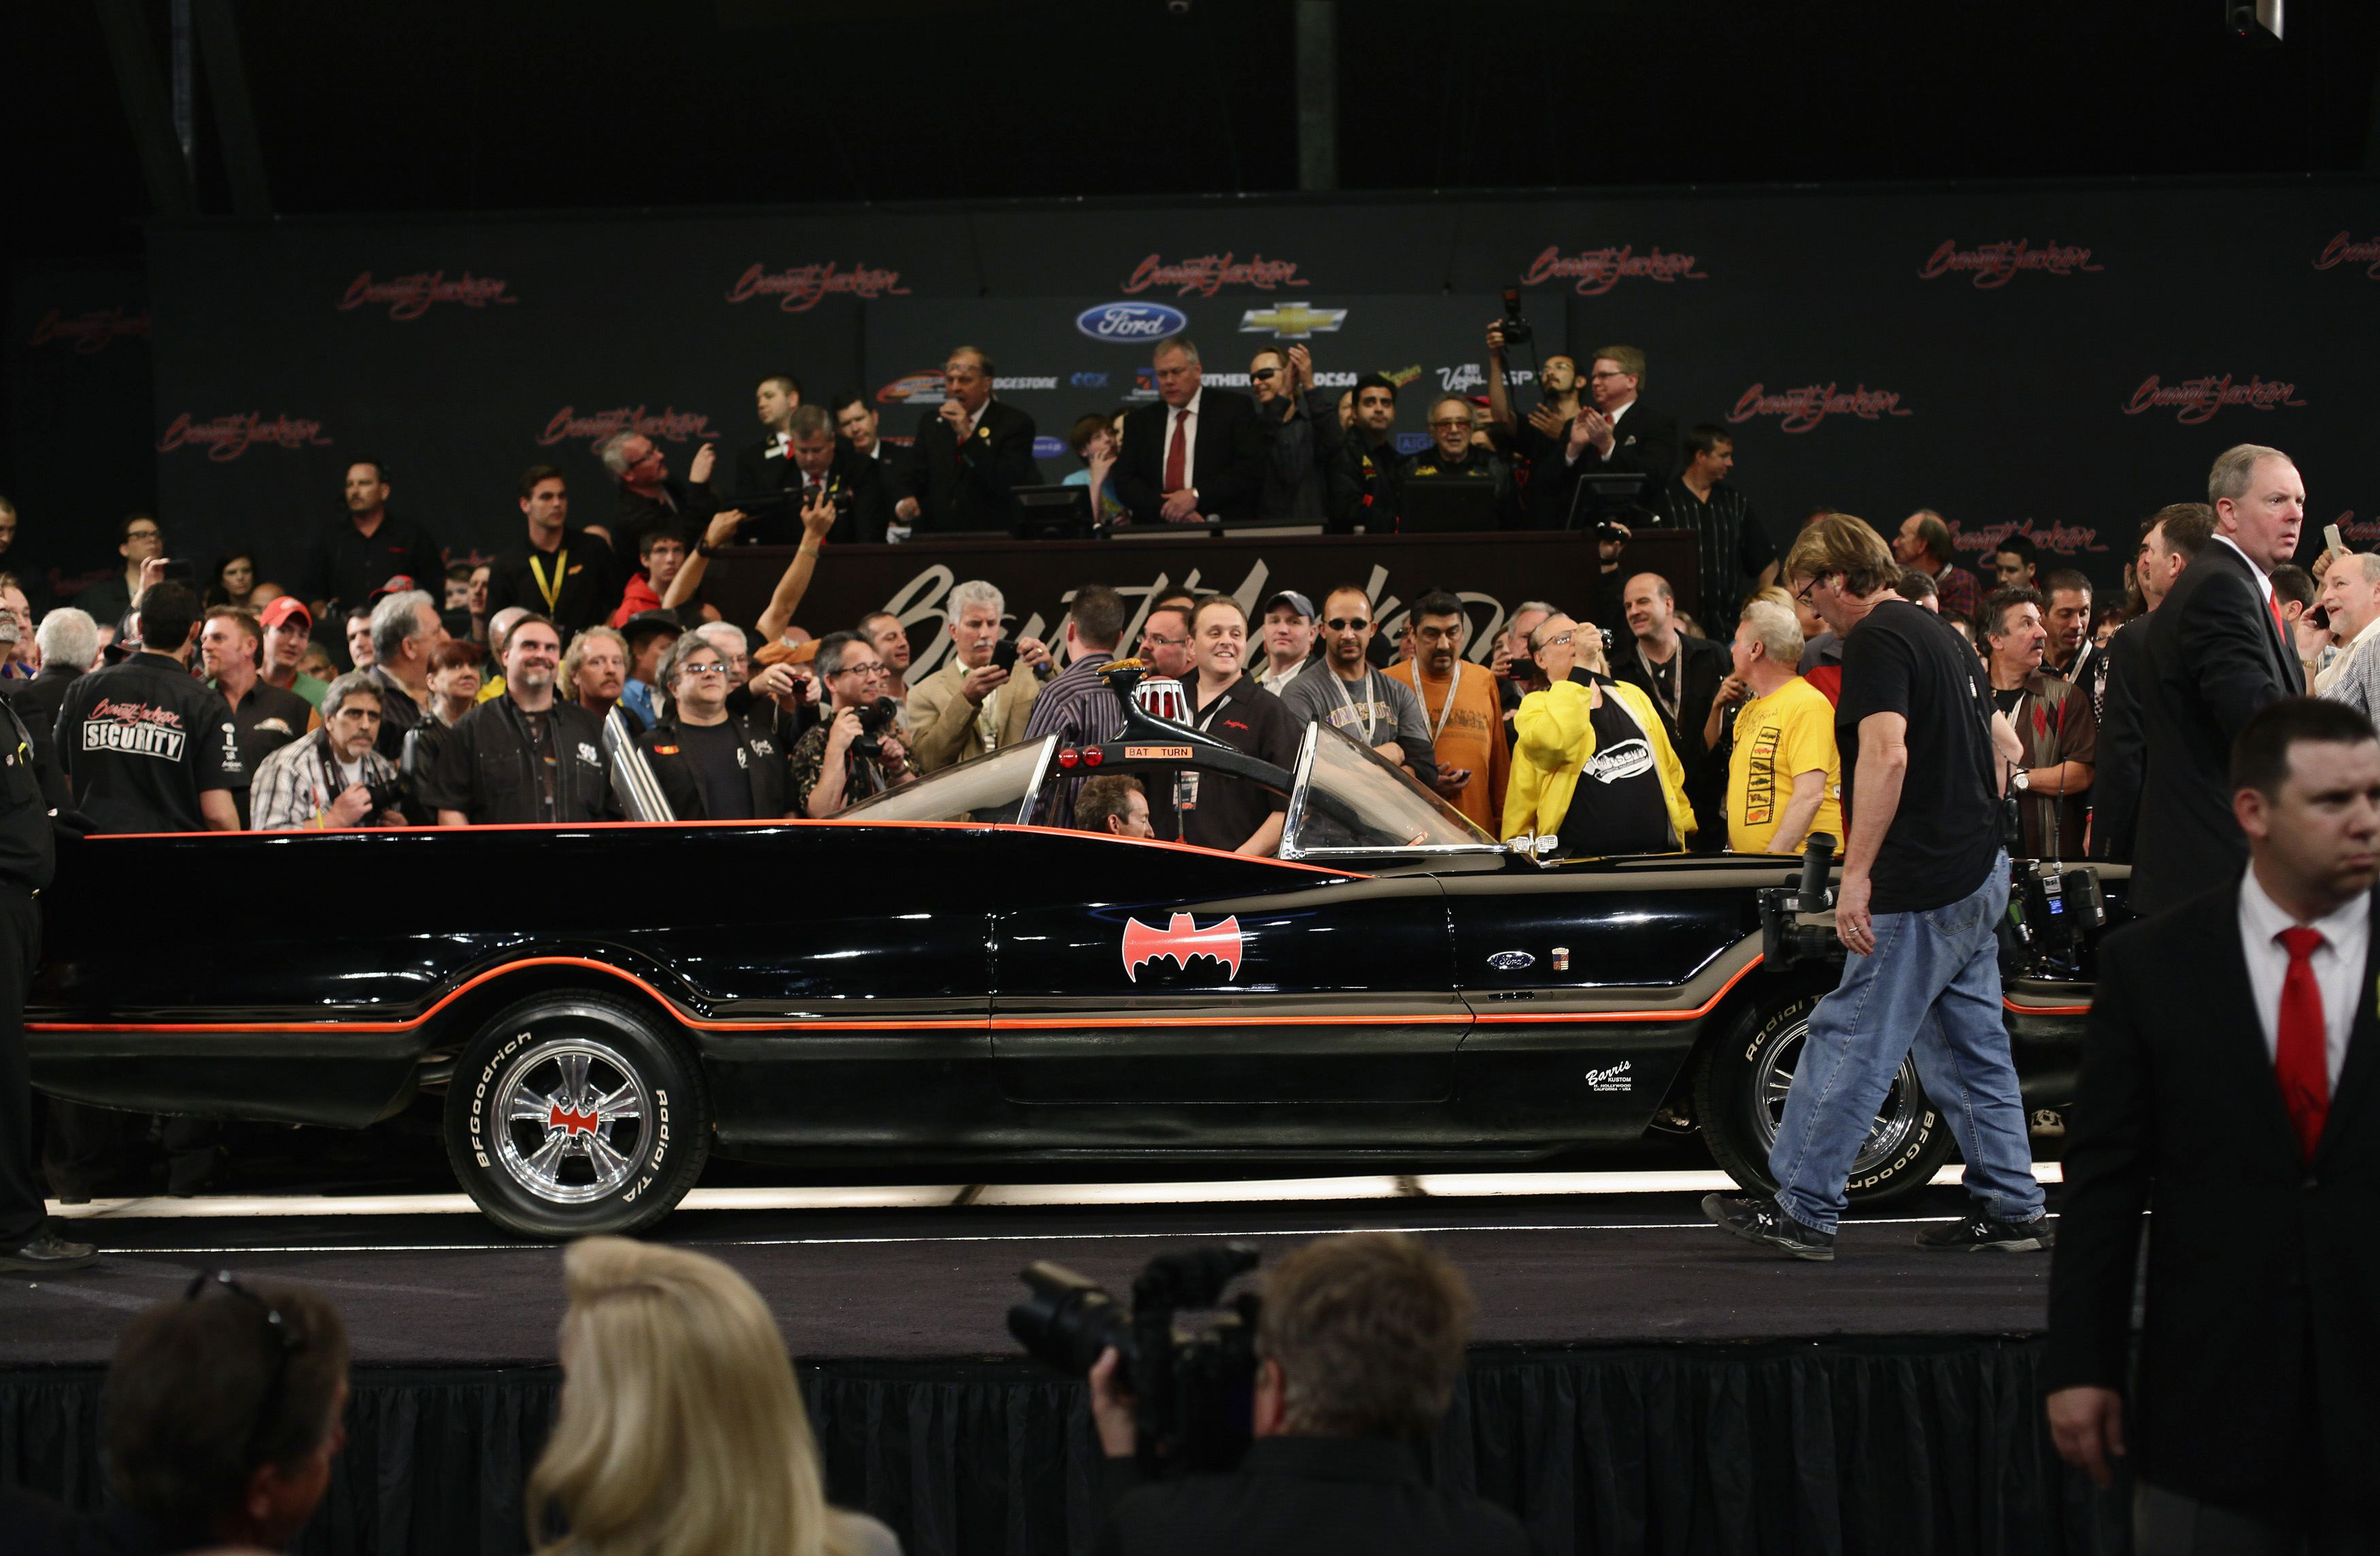 The original Batmobile is displayed on stage during the Barrett-Jackson collectors car auction in Scottsdale, Arizona January 19, 2013. The vehicle was sold for $4,200,000, according to the auction company. REUTERS/Joshua Lott (UNITED STATES - Tags: ENTERTAINMENT SOCIETY BUSINESS TRANSPORT)